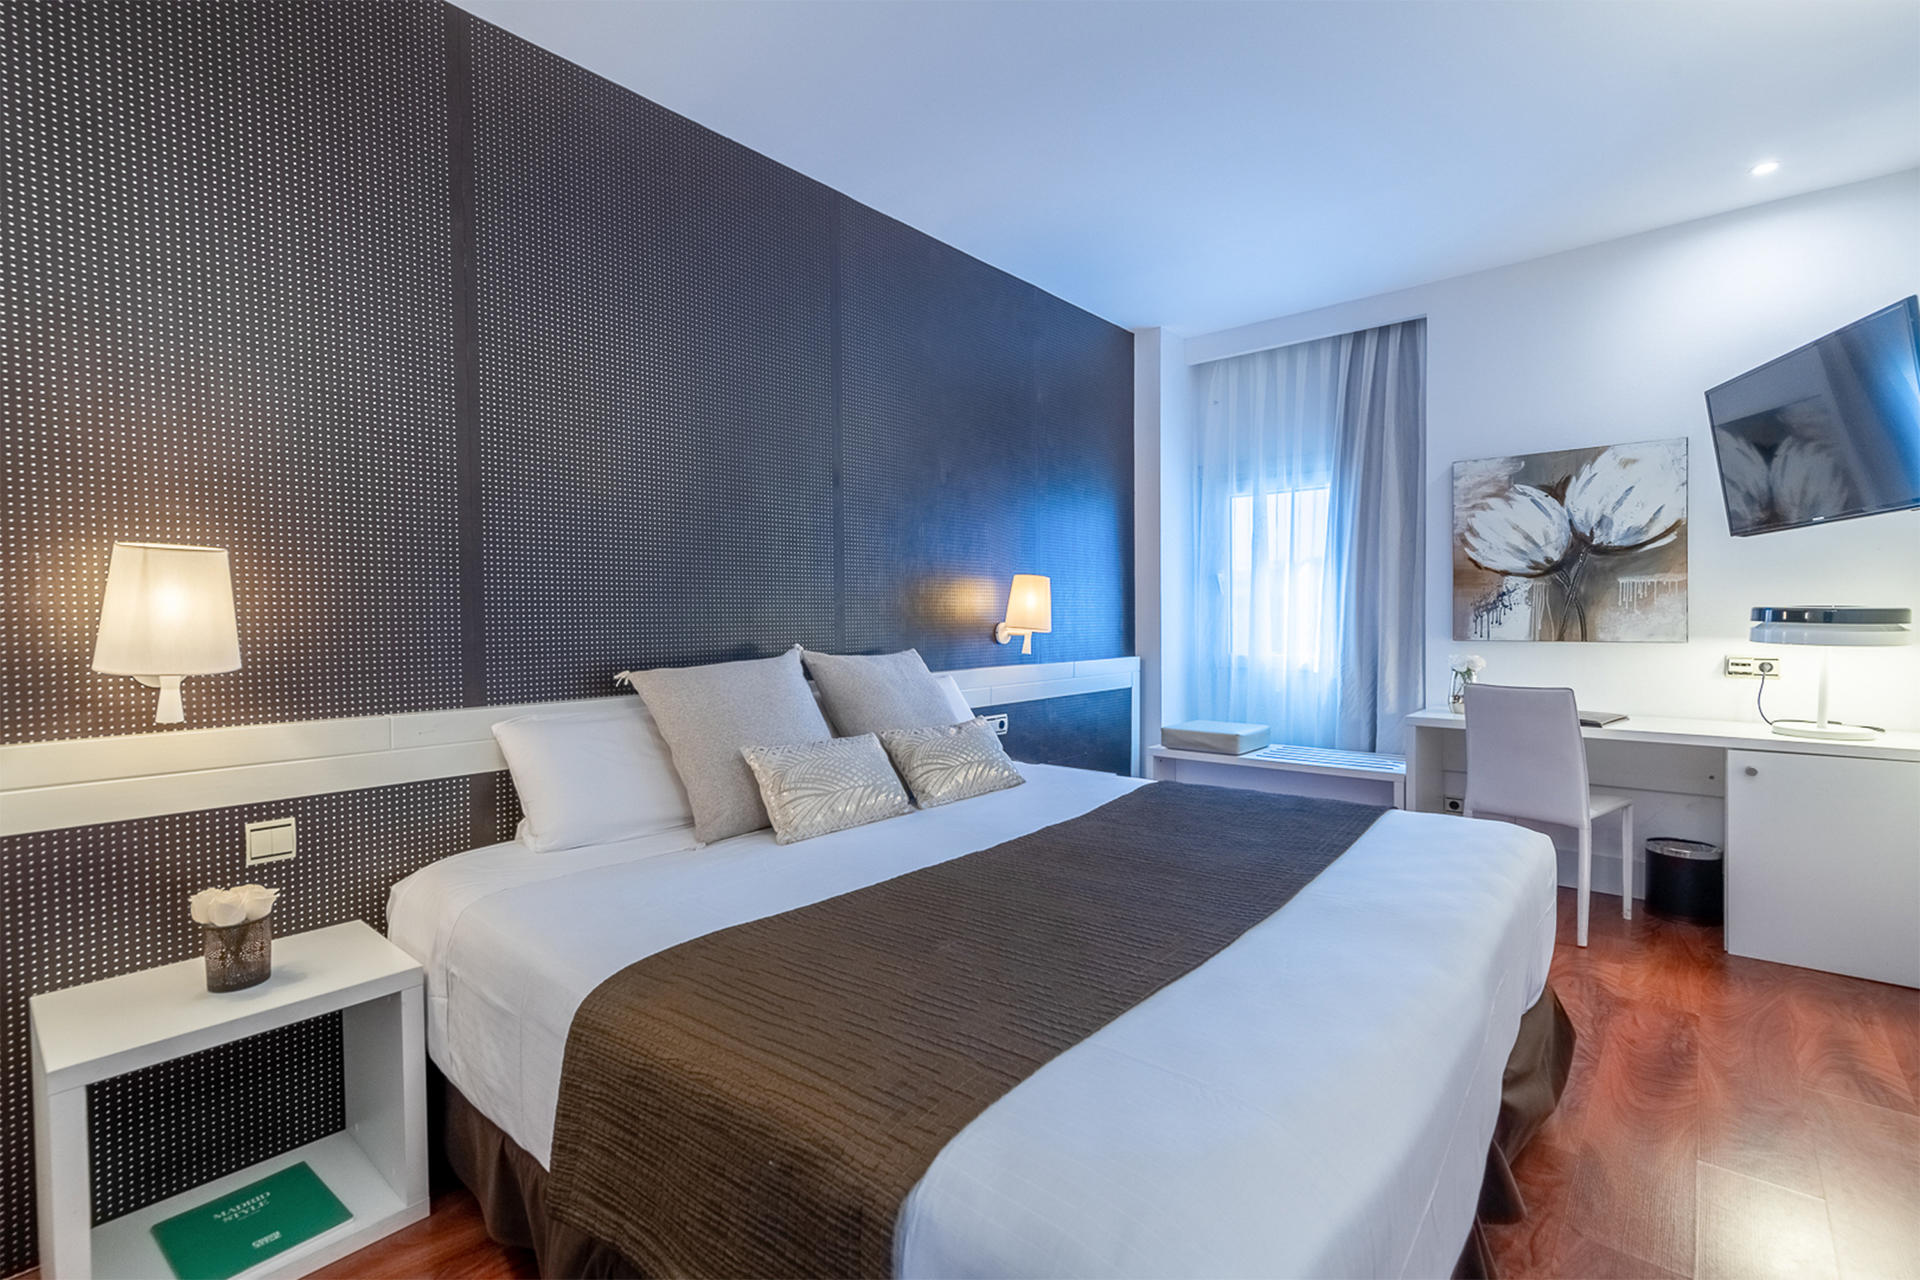 Double Room at Hotel Amura Alcobendas near Madrid Airport